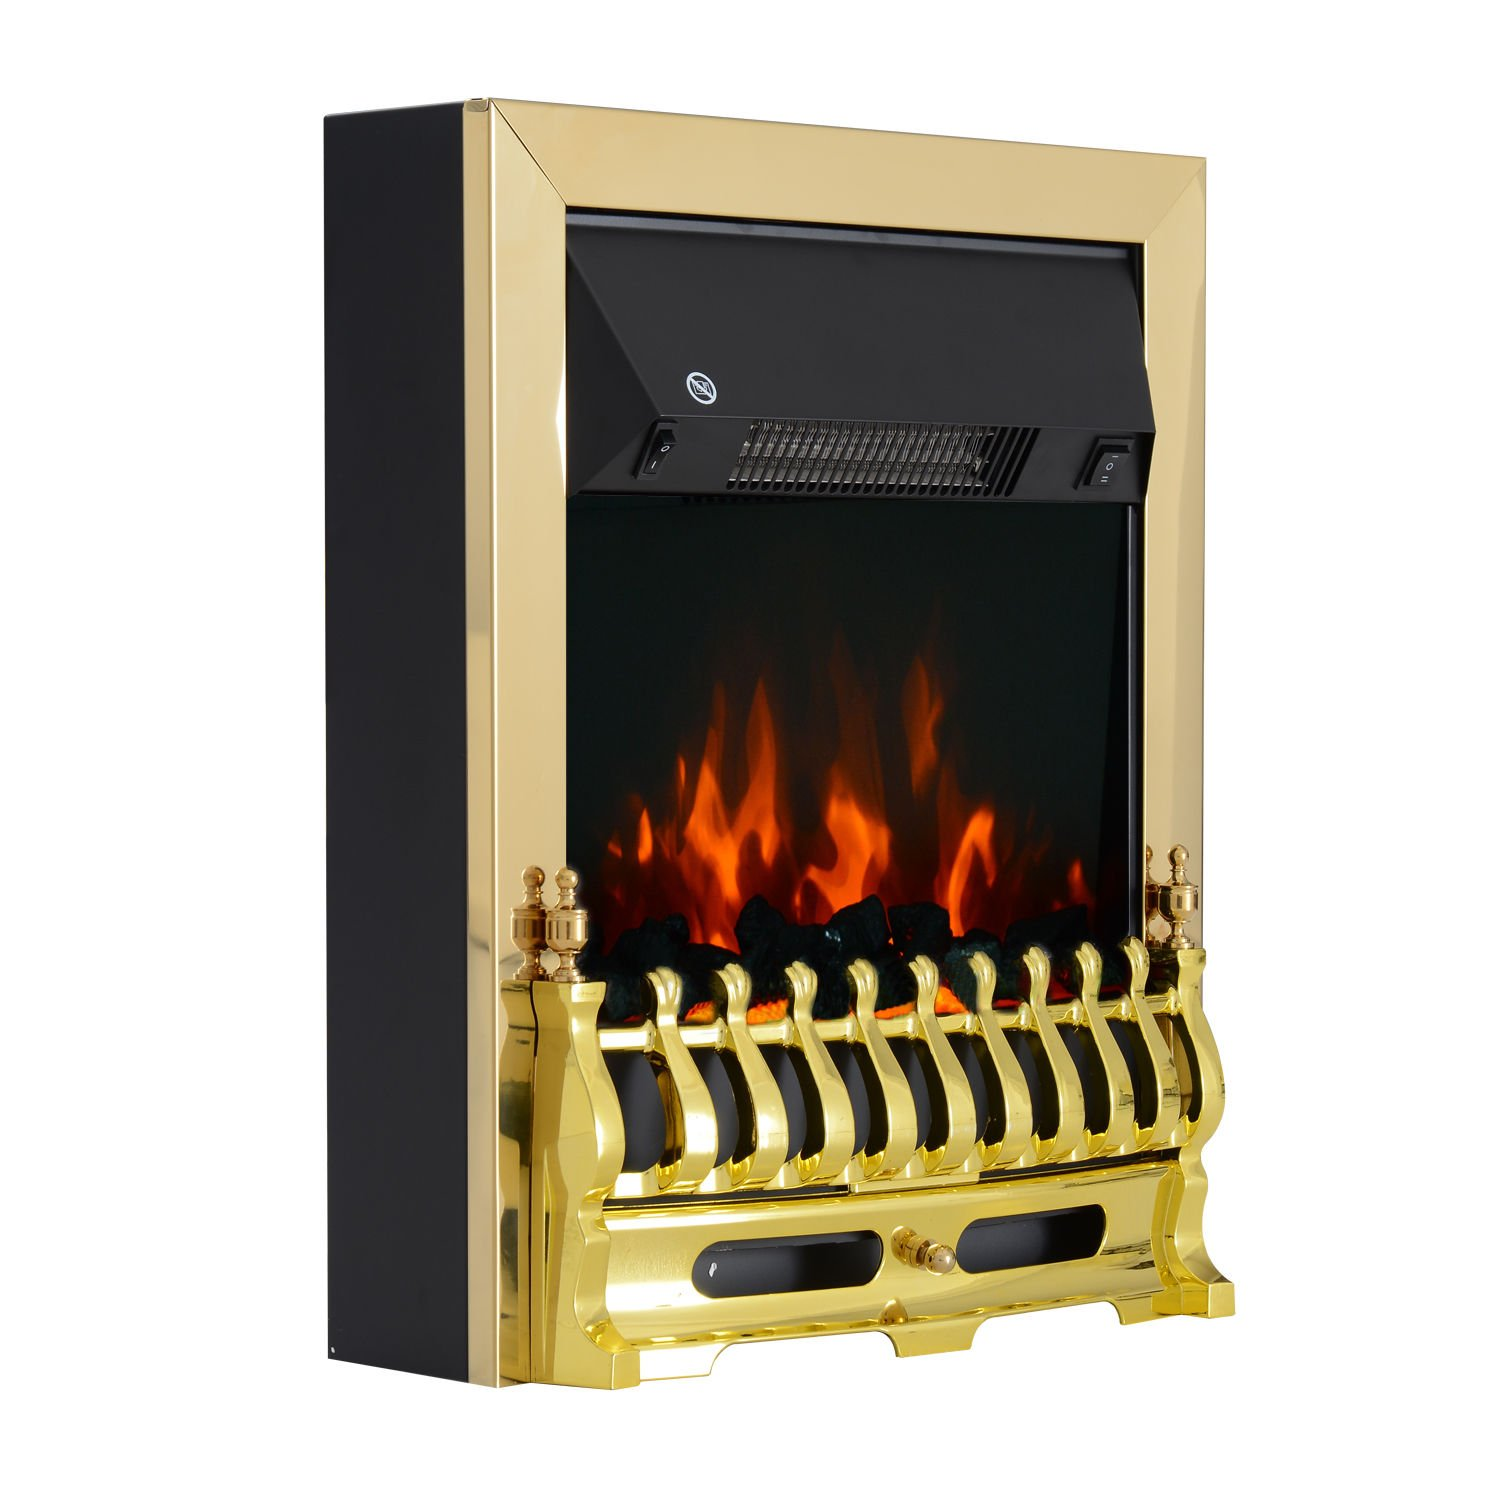 HOMCOM Electric Fireplace LED Light Complete Fire Place Heating Indoor Heater Coal Burning Flame Effect Heat 2000W Max Sold by MHSTAR